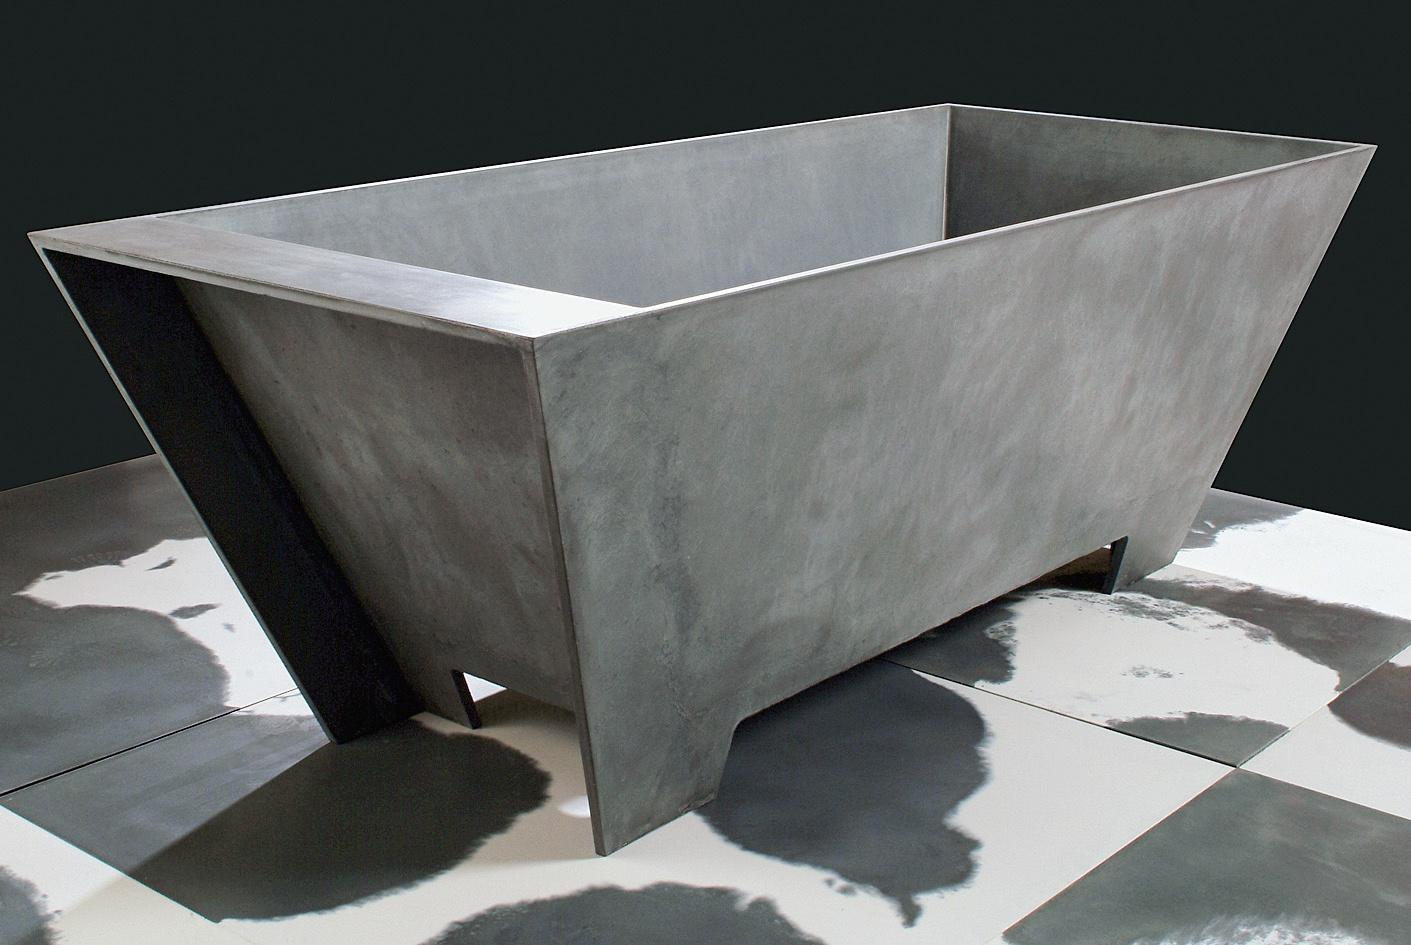 The low permeability and high durability of Ductal makes it an intriguing material for plumbing fixtures. As shown by this tub designed by Francesco Passaniti, the thin sections provide sculptural opportunities not possible with thick concrete tubs or washbasins.